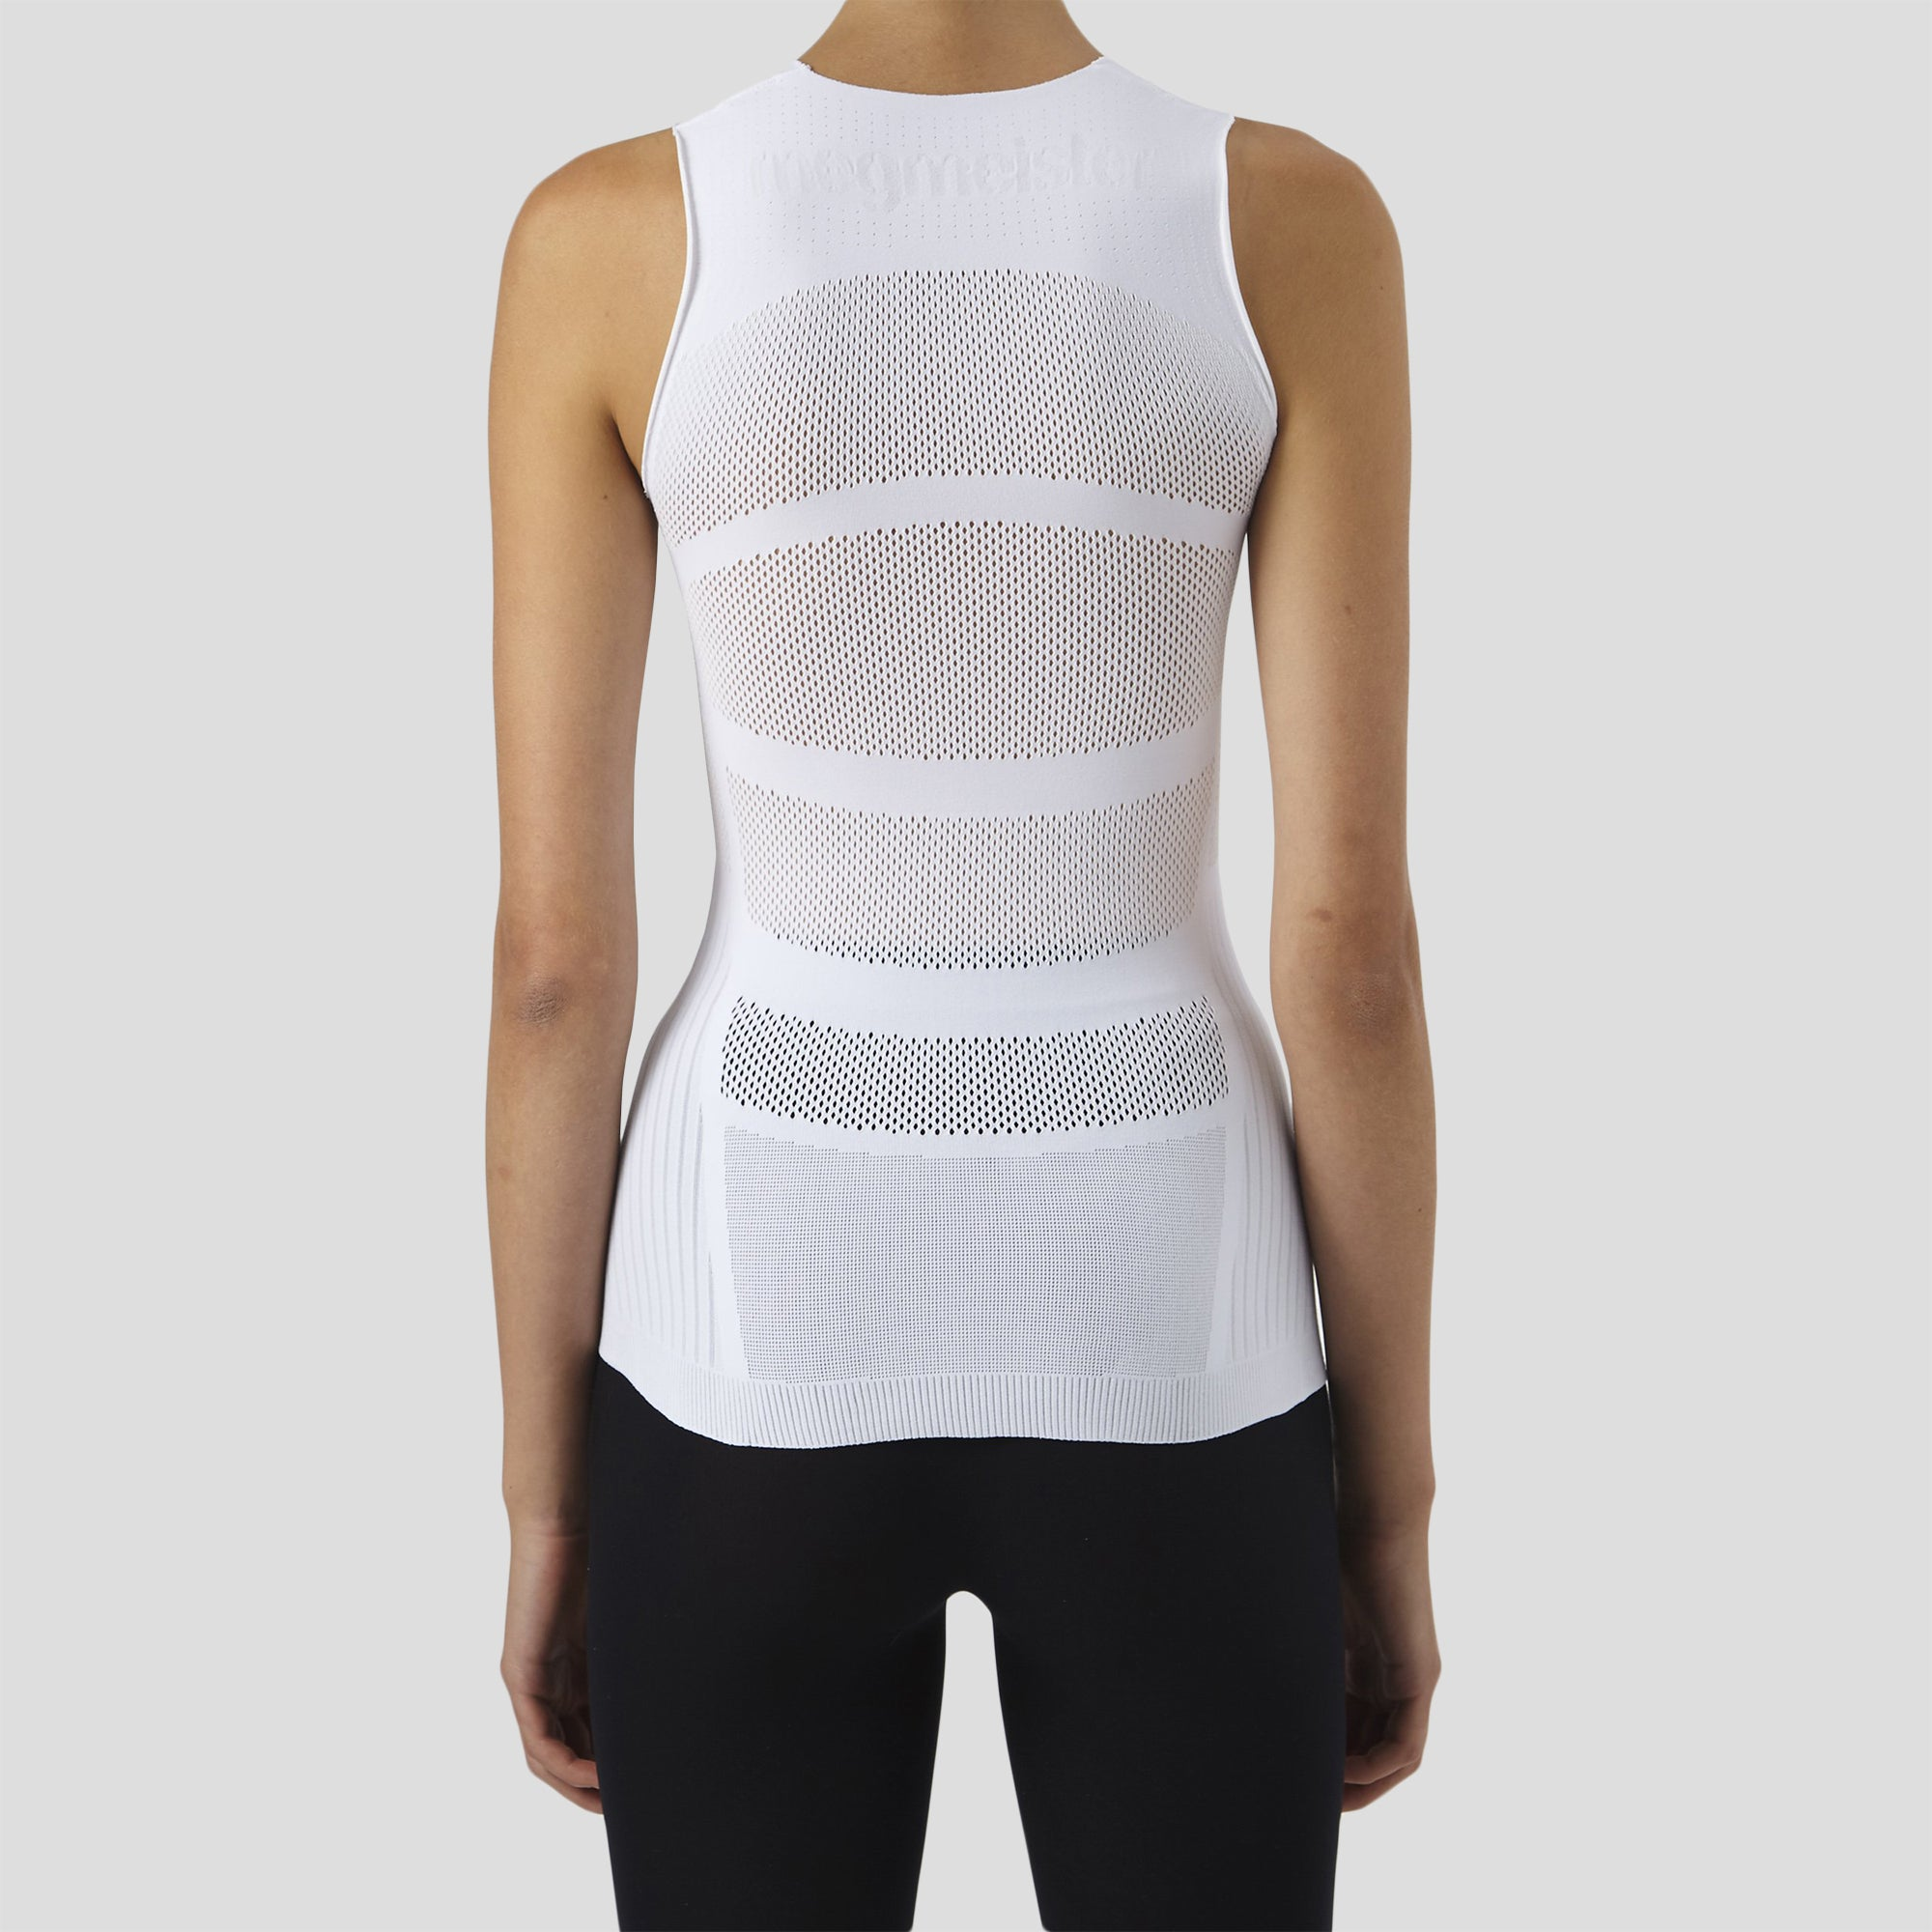 megmeister-womens-drynamo-cycle-sleeveless-base-layer-in-white-close-up